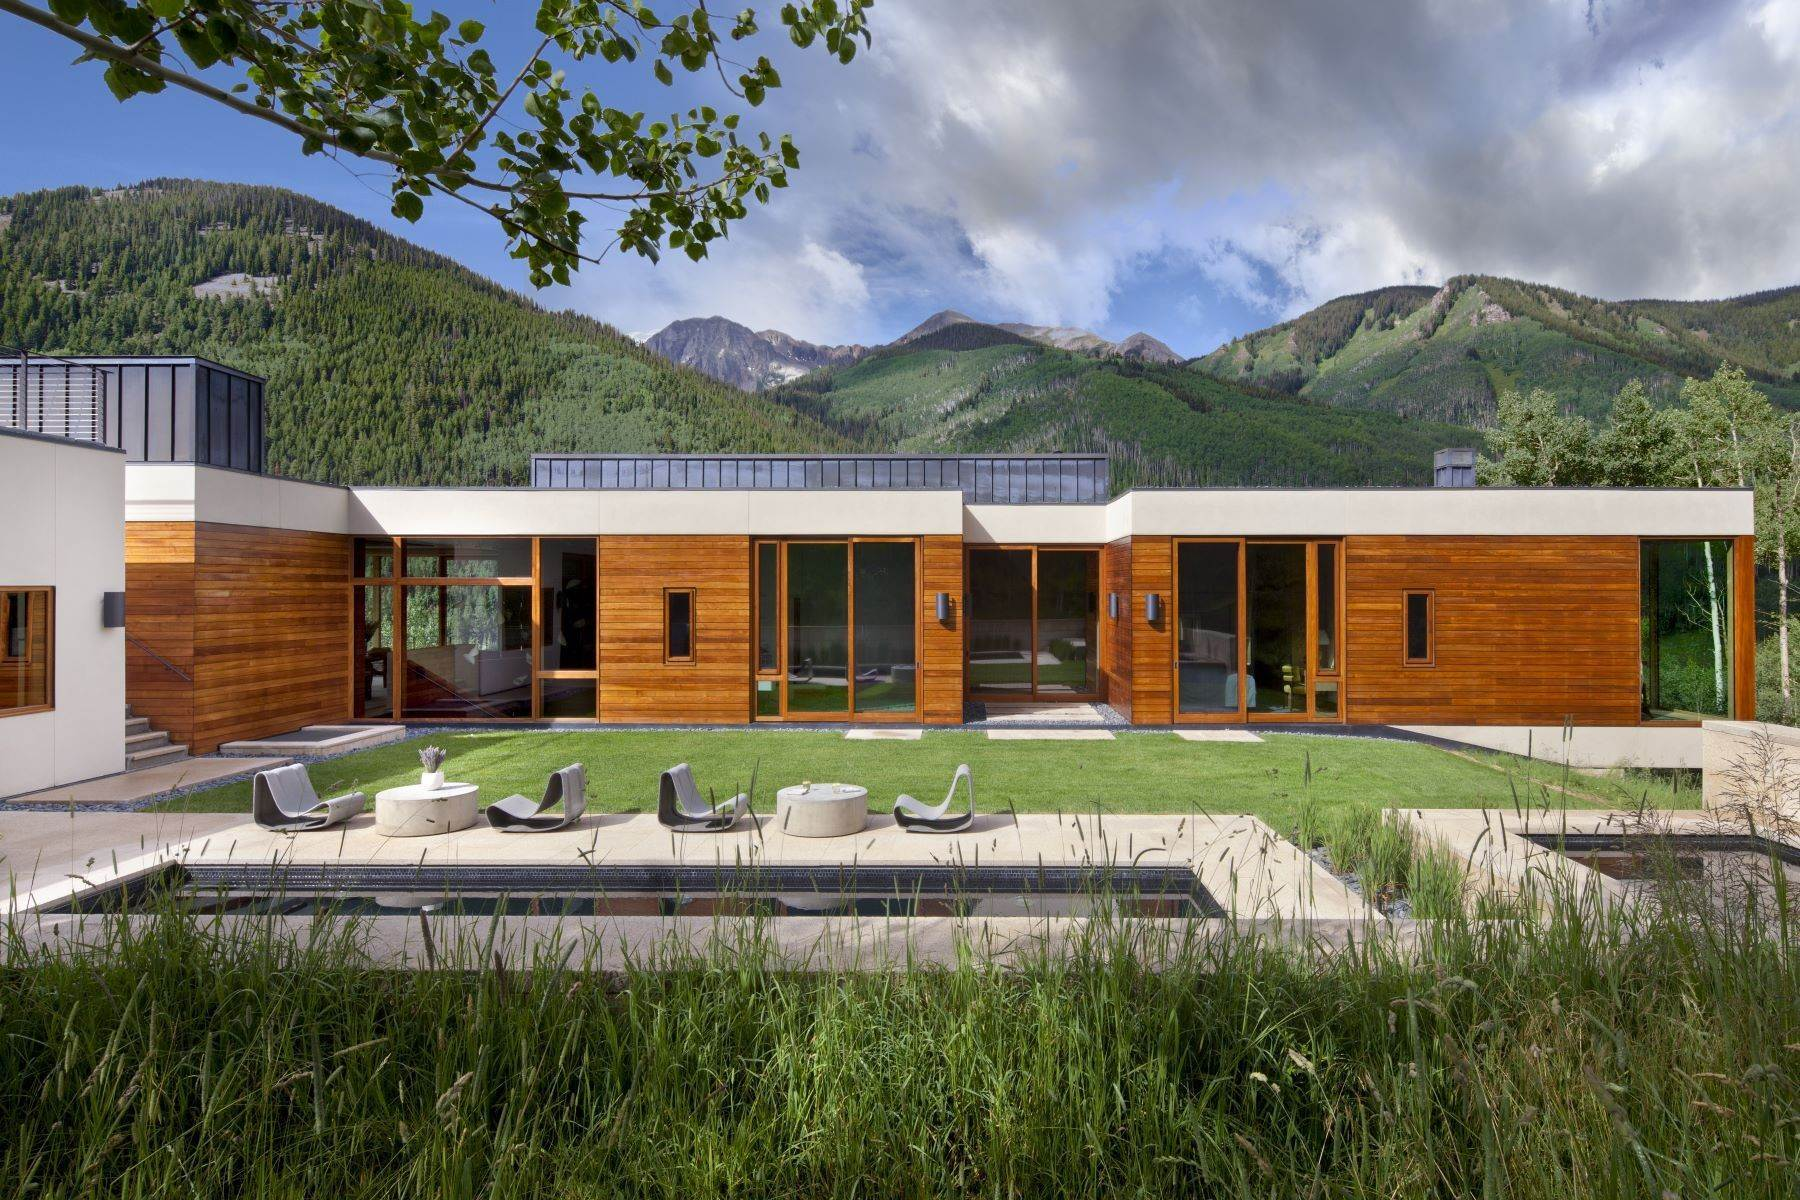 Single Family Homes for Sale at Exquisite Modern Sanctuary 8720/8716 Castle Creek Road, Aspen, Colorado, 81611 United States